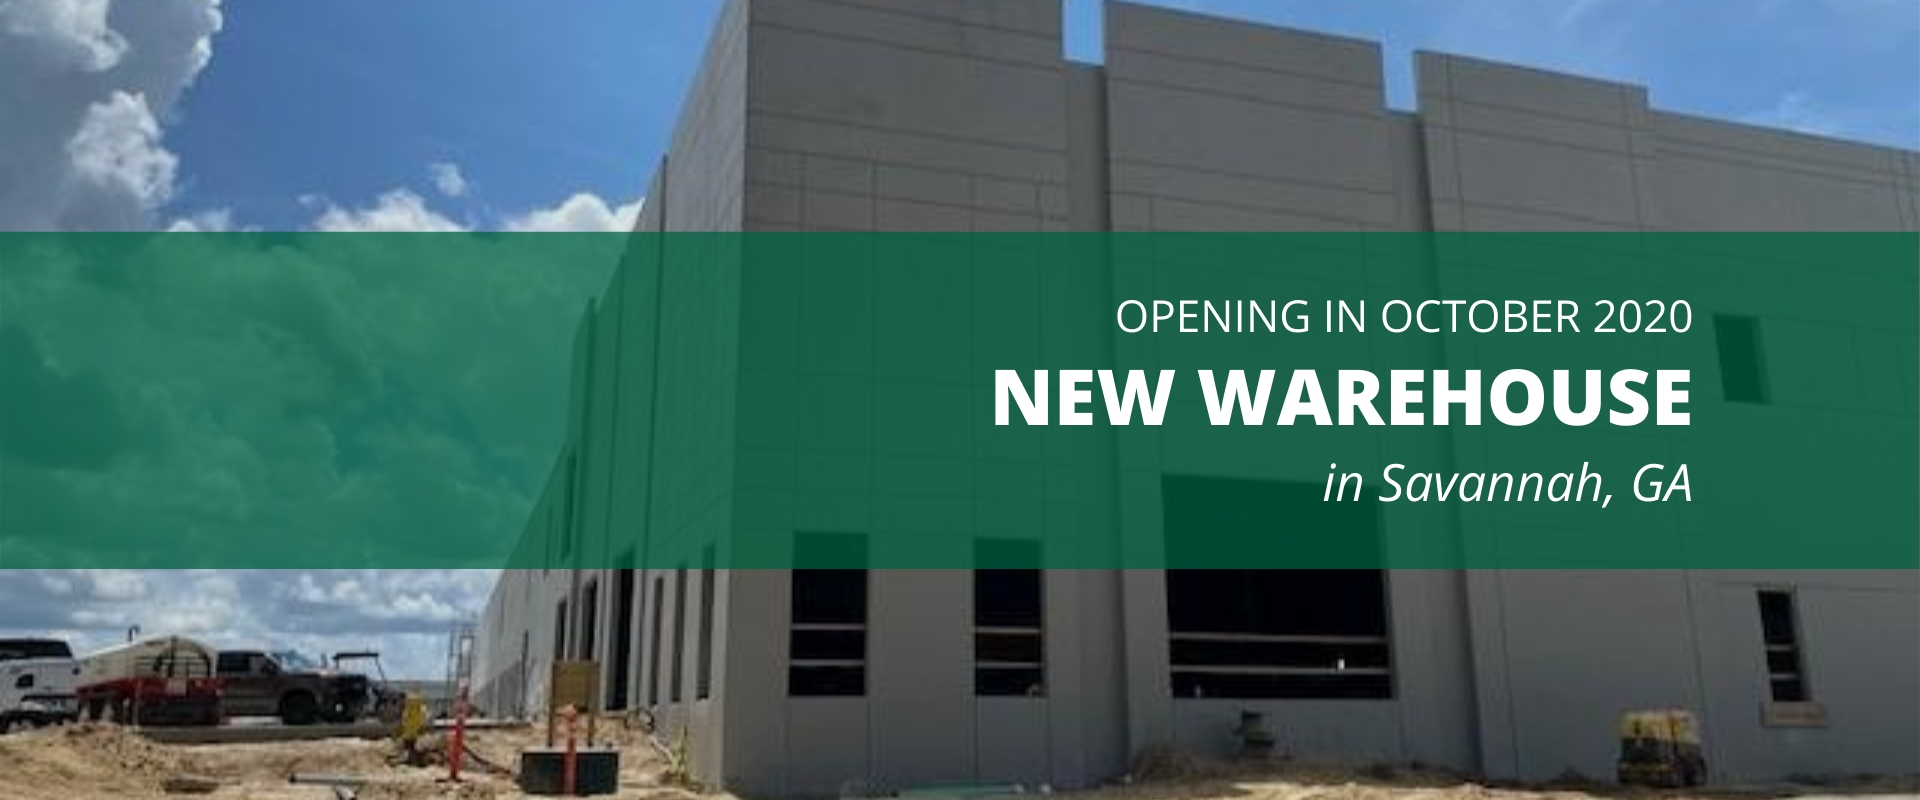 New World Distribution Services Warehouse Coming to Savannah, GA